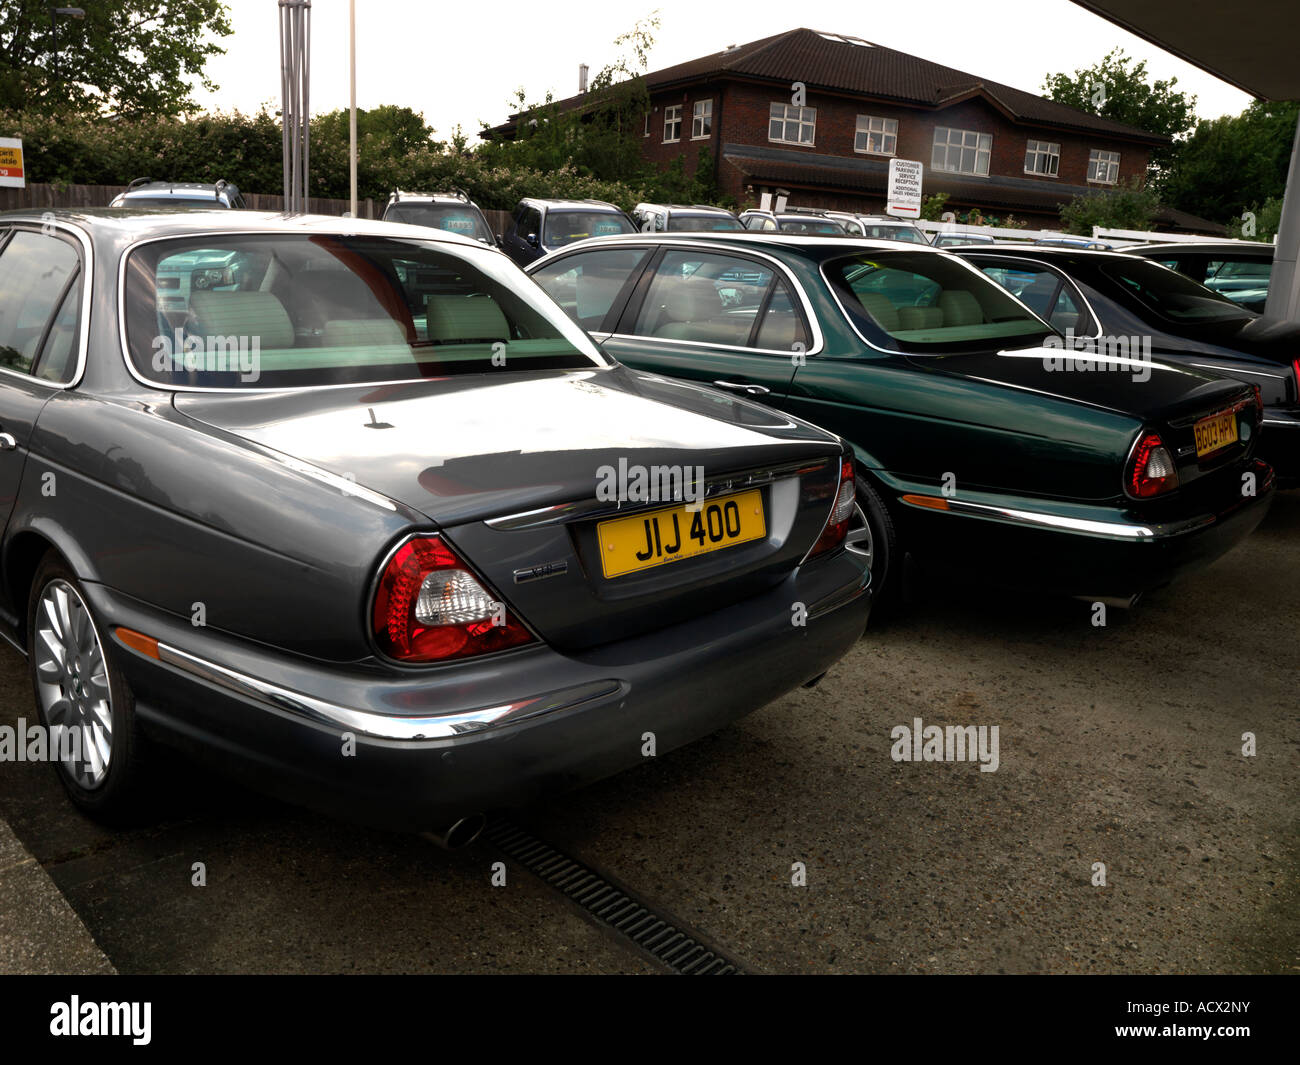 Secondhand Cars for Sale England - Stock Image